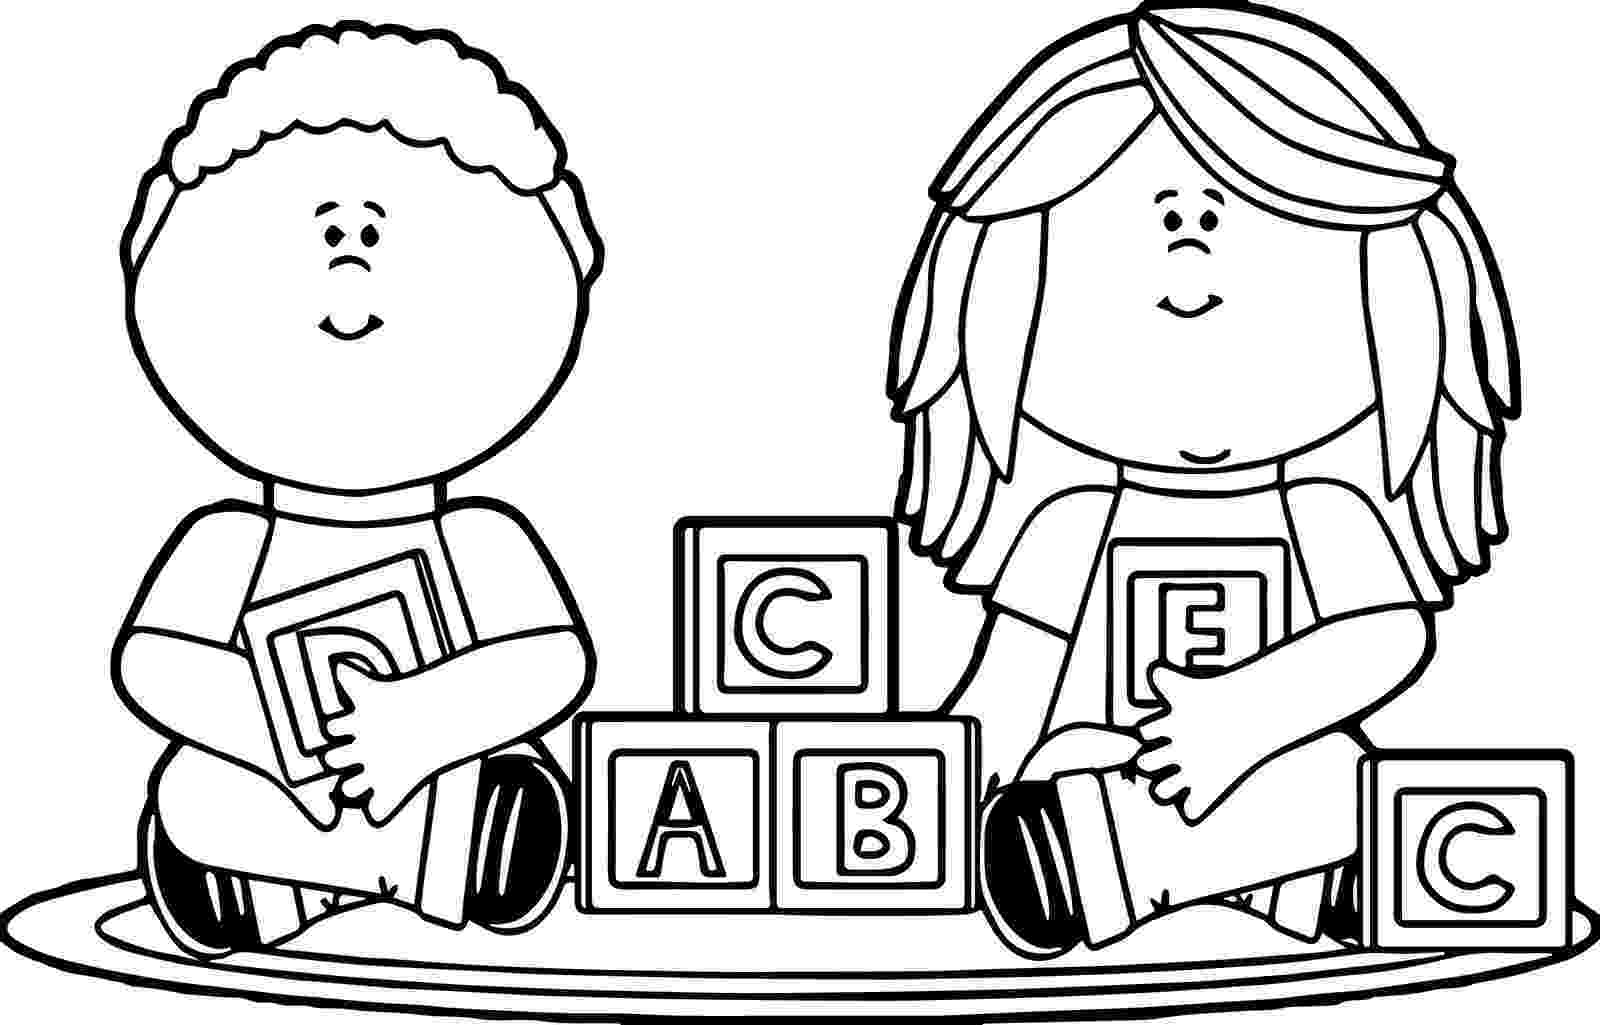 colouring pages for play school printable coloring pages for kids playgroup a4 size 2 school pages for play colouring